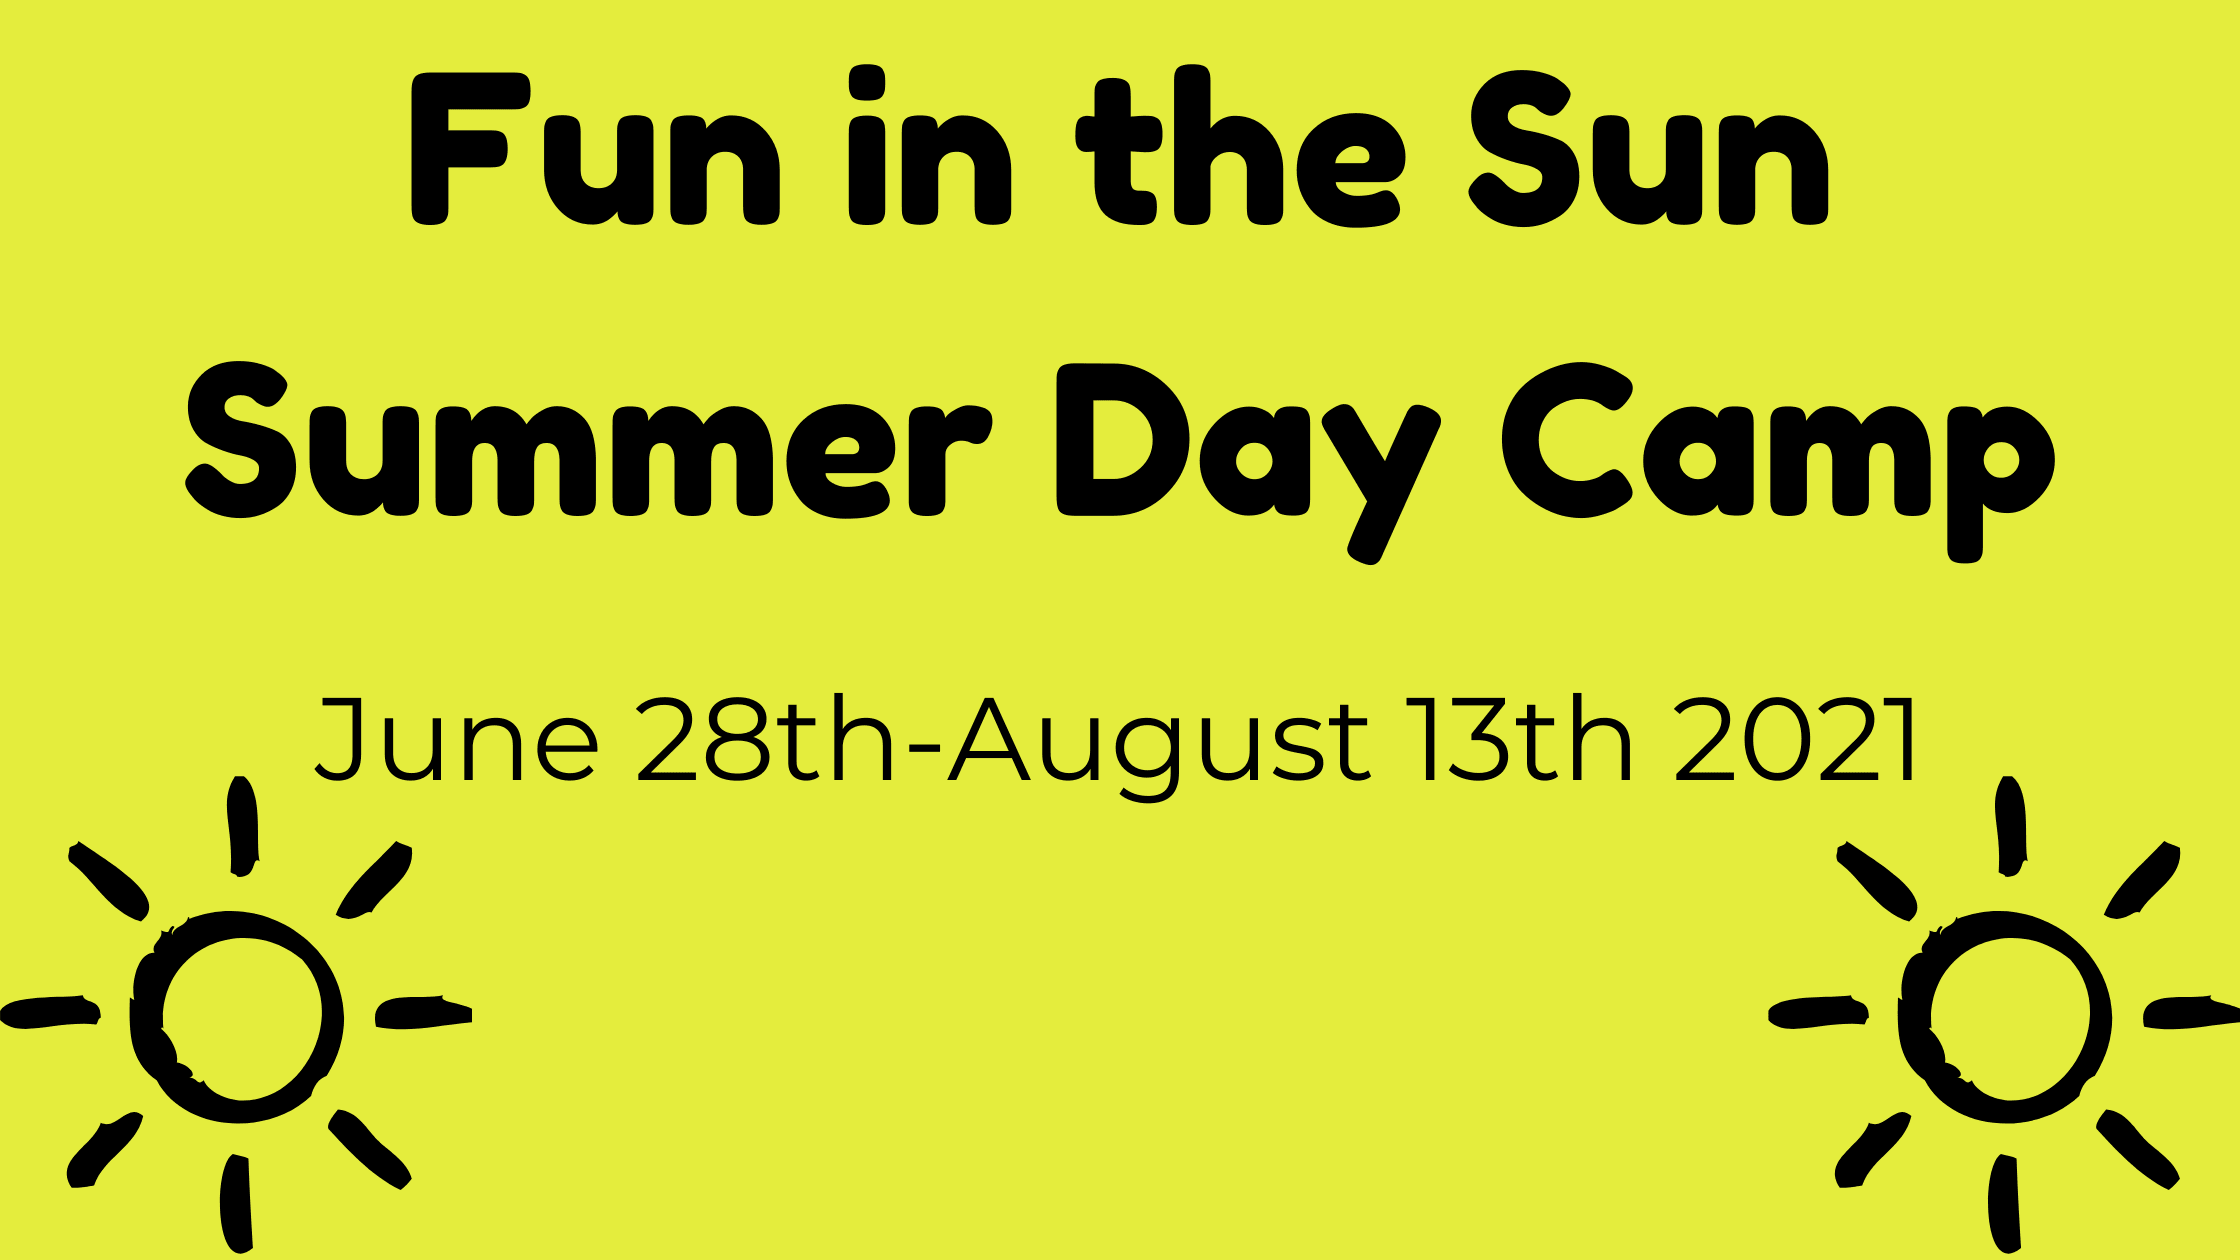 Fun in the Sun Summer Day Camp banner Opens in new window